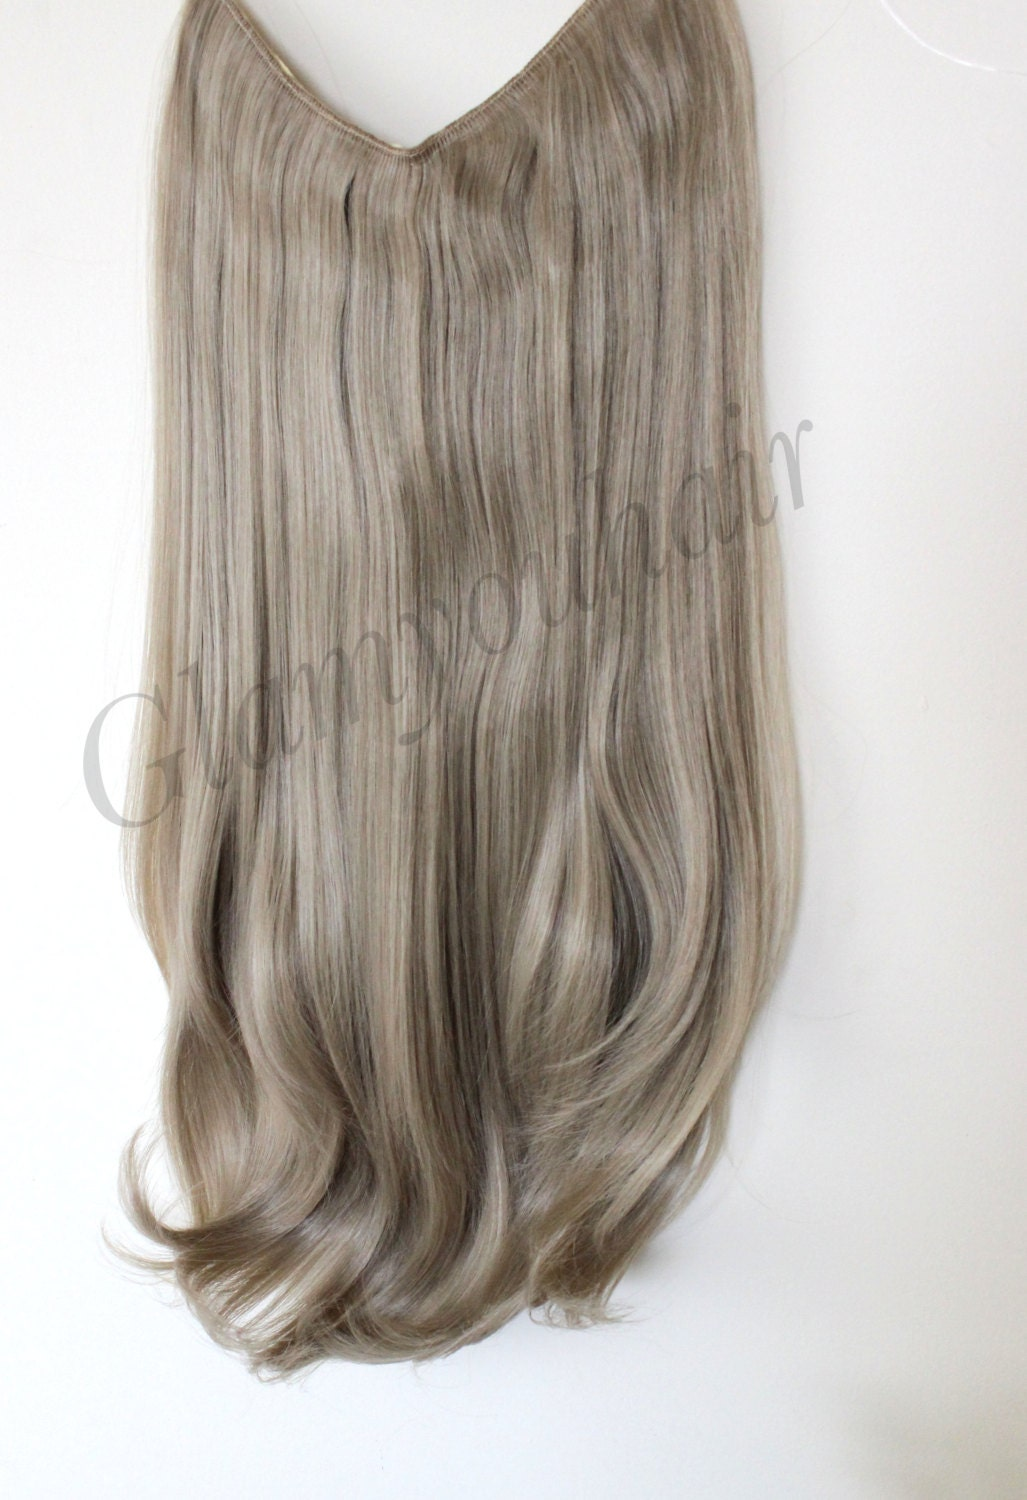 20-22 180g SECRET Syn HALO wire hair extension \/180